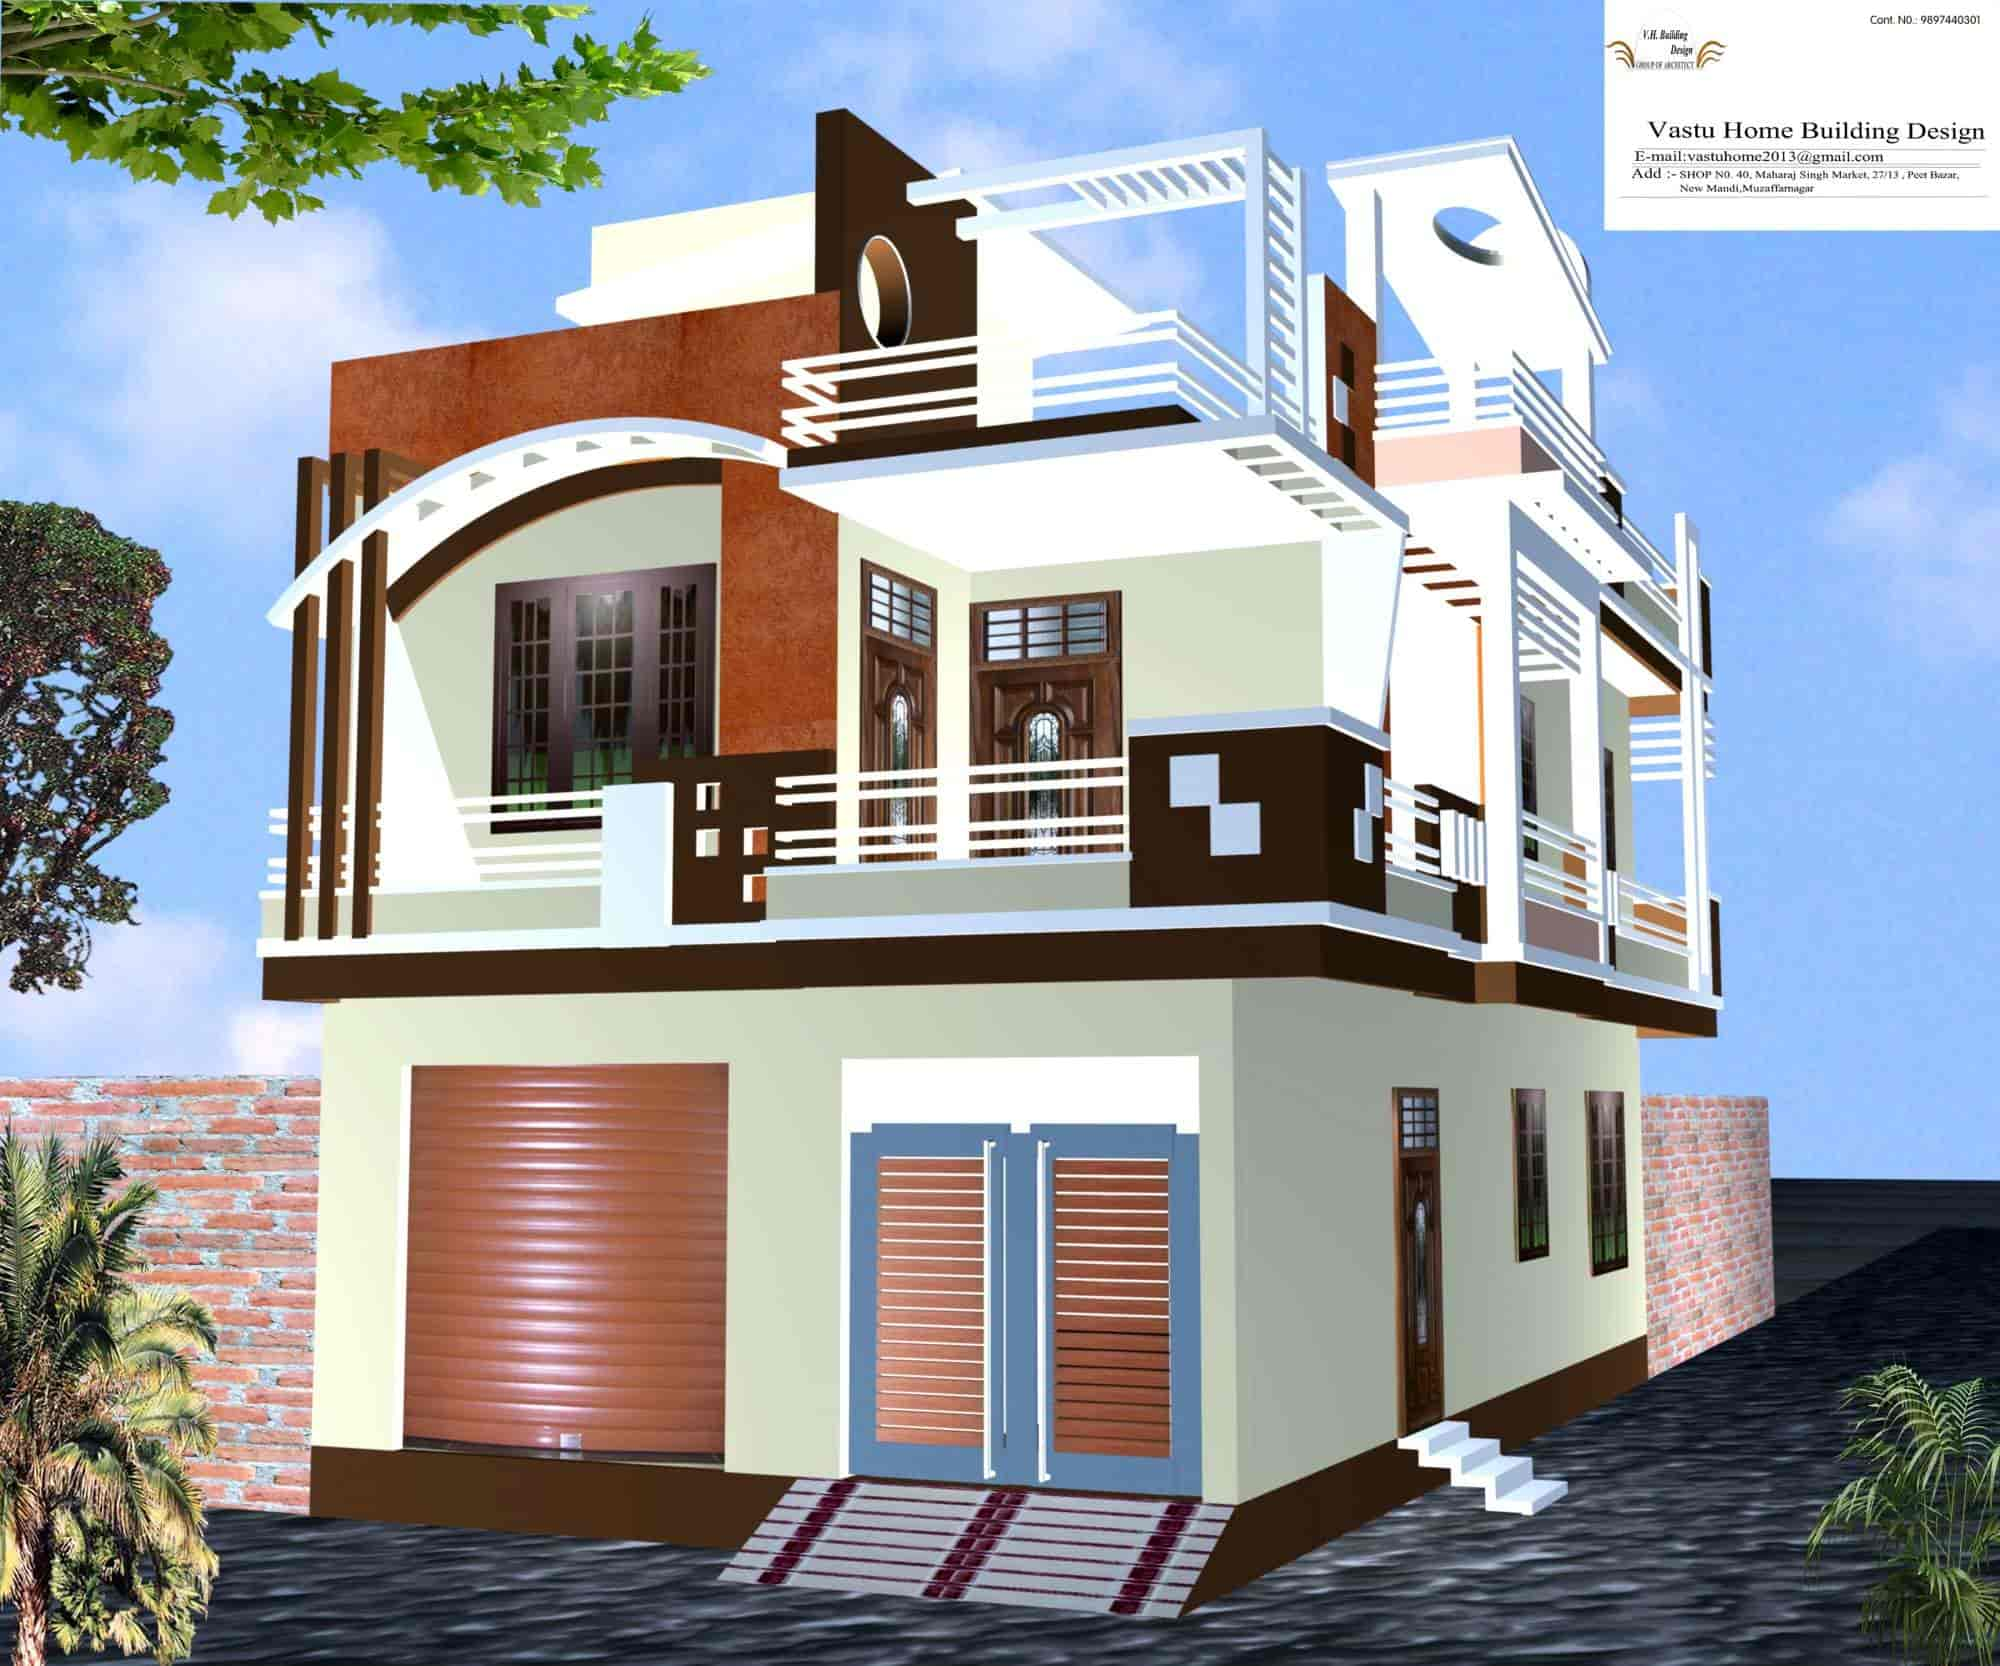 High Quality ... Architect Design   Vastu Home Building Design Photos, Muzaffar Nagar  City, Muzaffarnagar   Architects ...